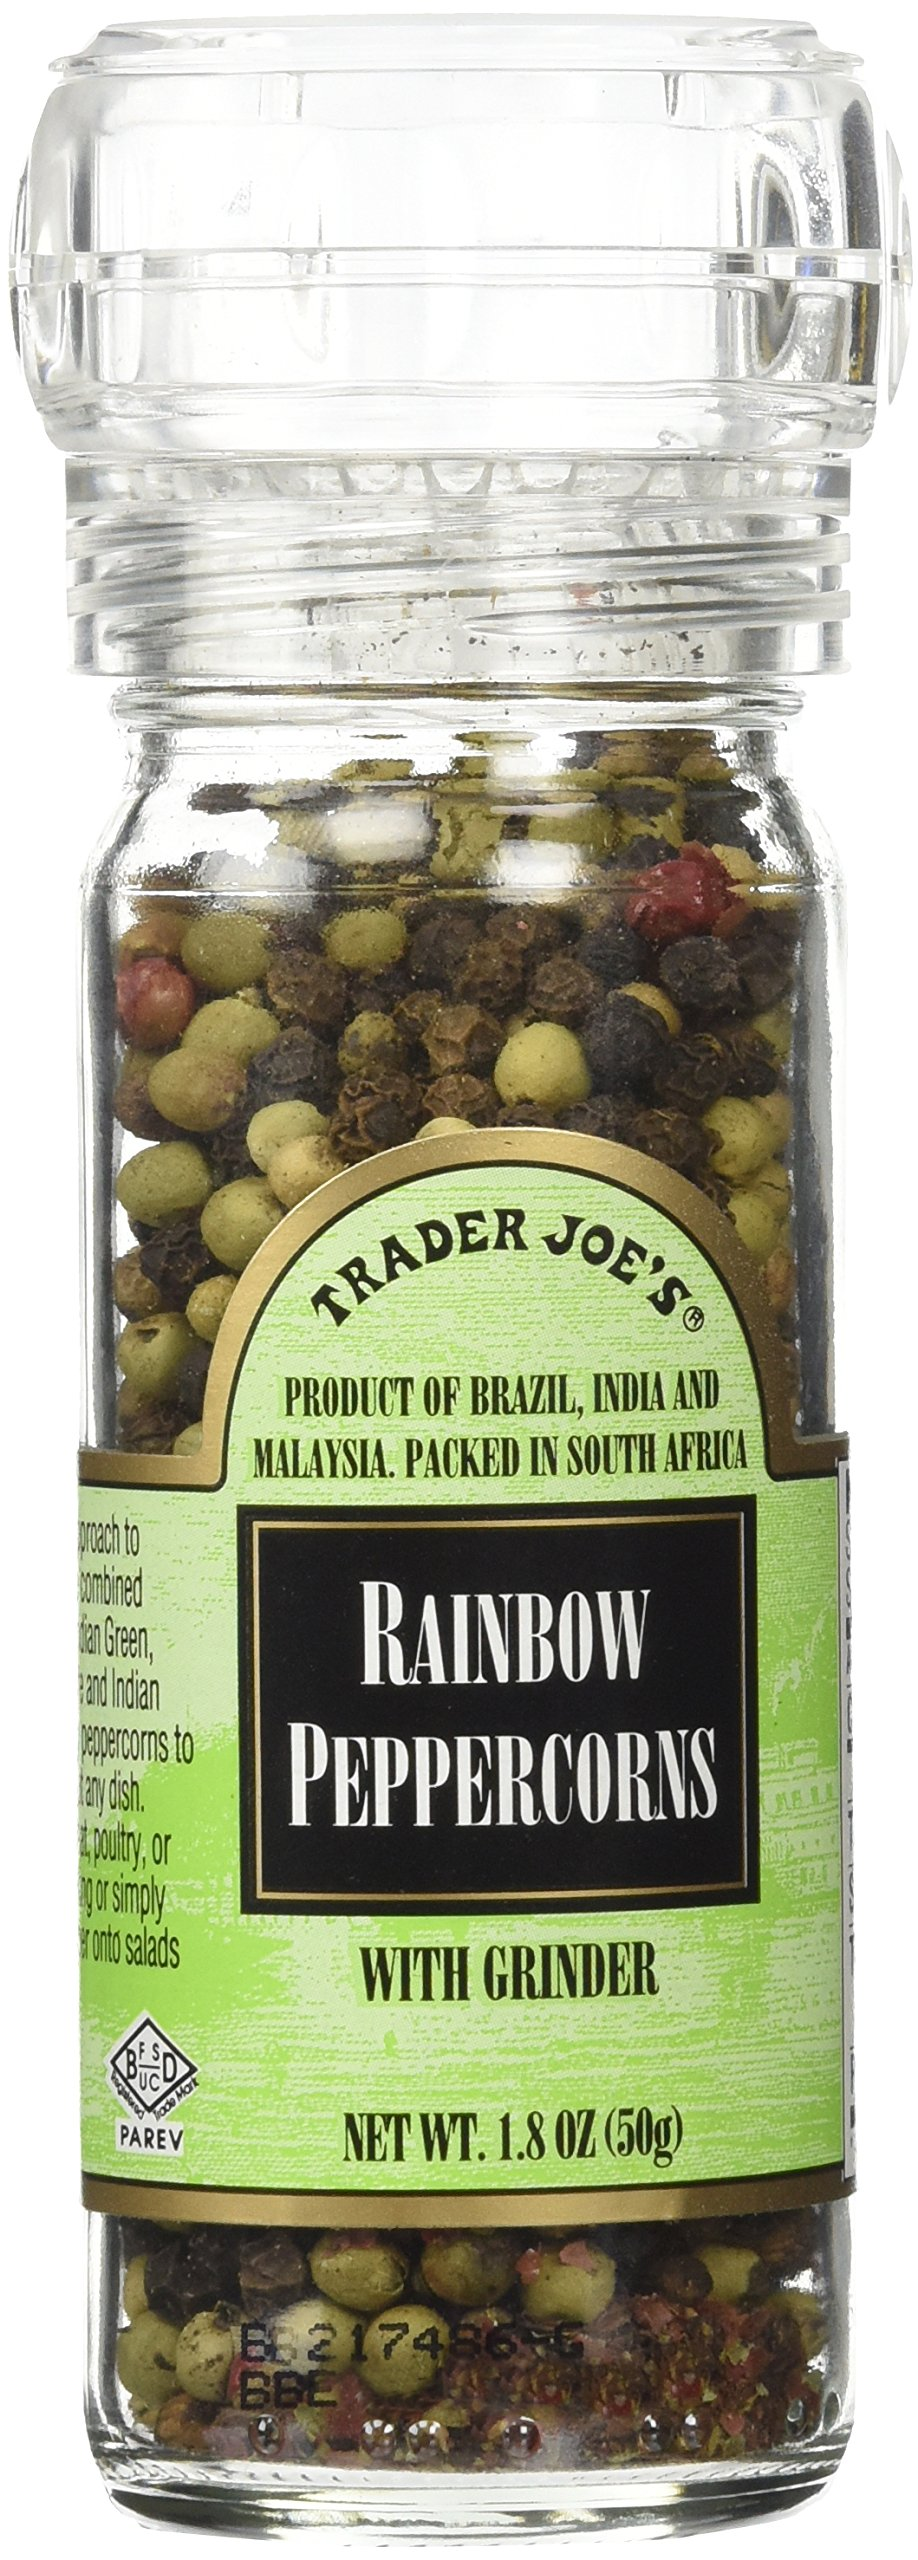 Trader Joe's Rainbow Peppercorns Pepper with Grinder (2 Pack)